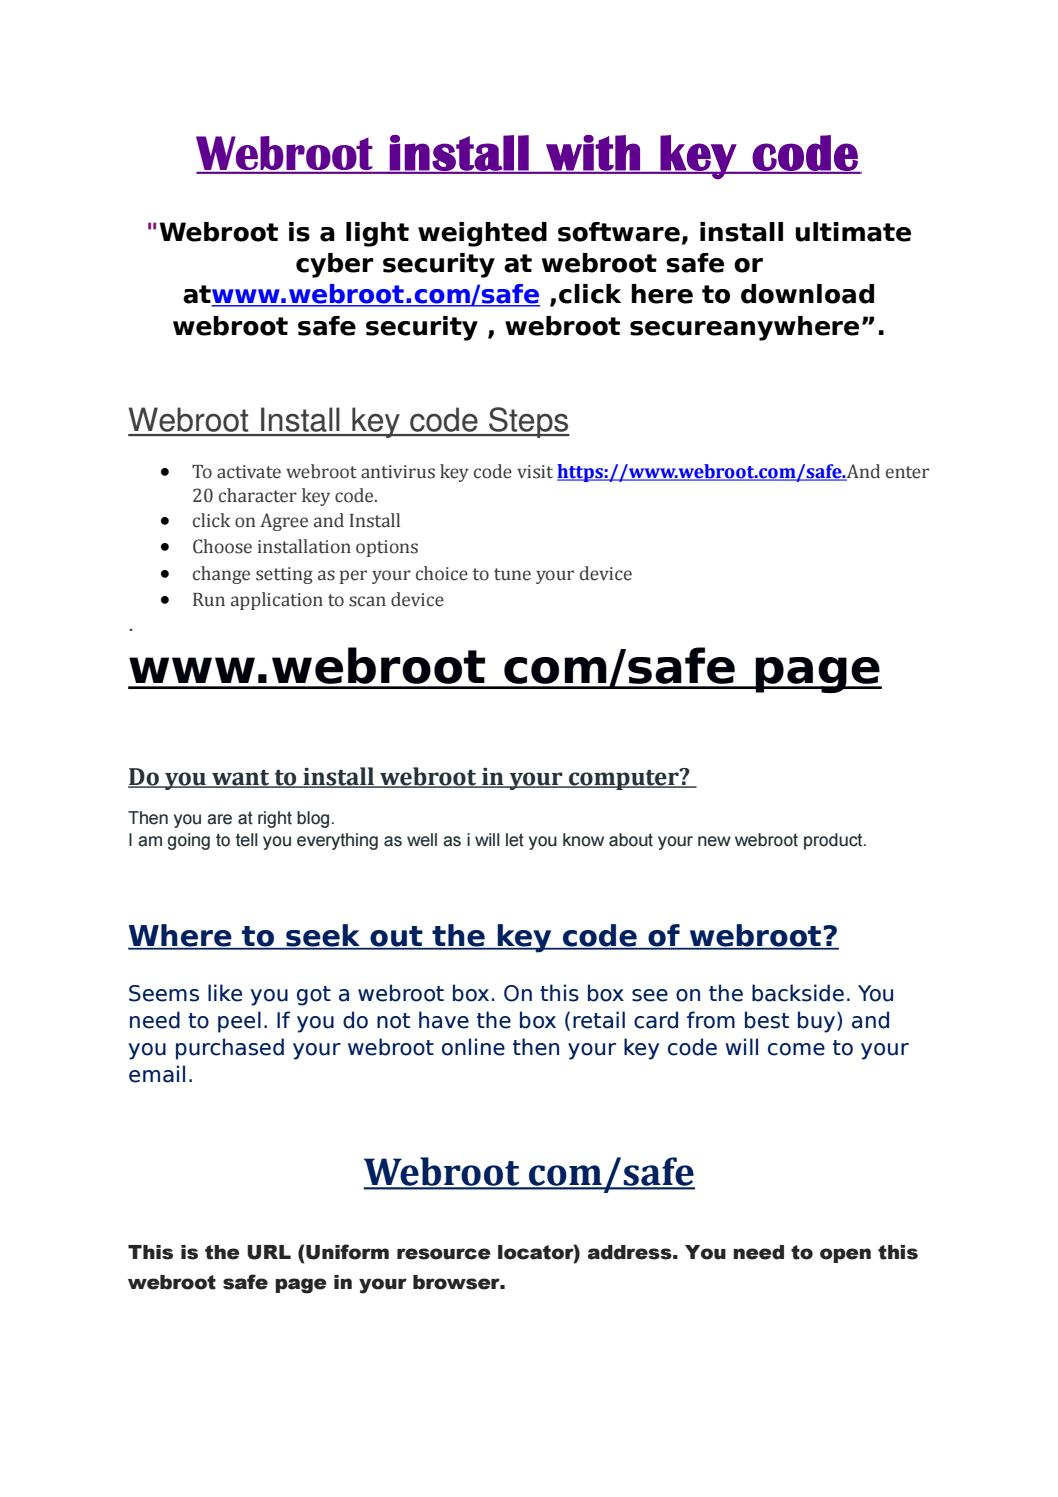 Webroot install with key code by Richard james - issuu